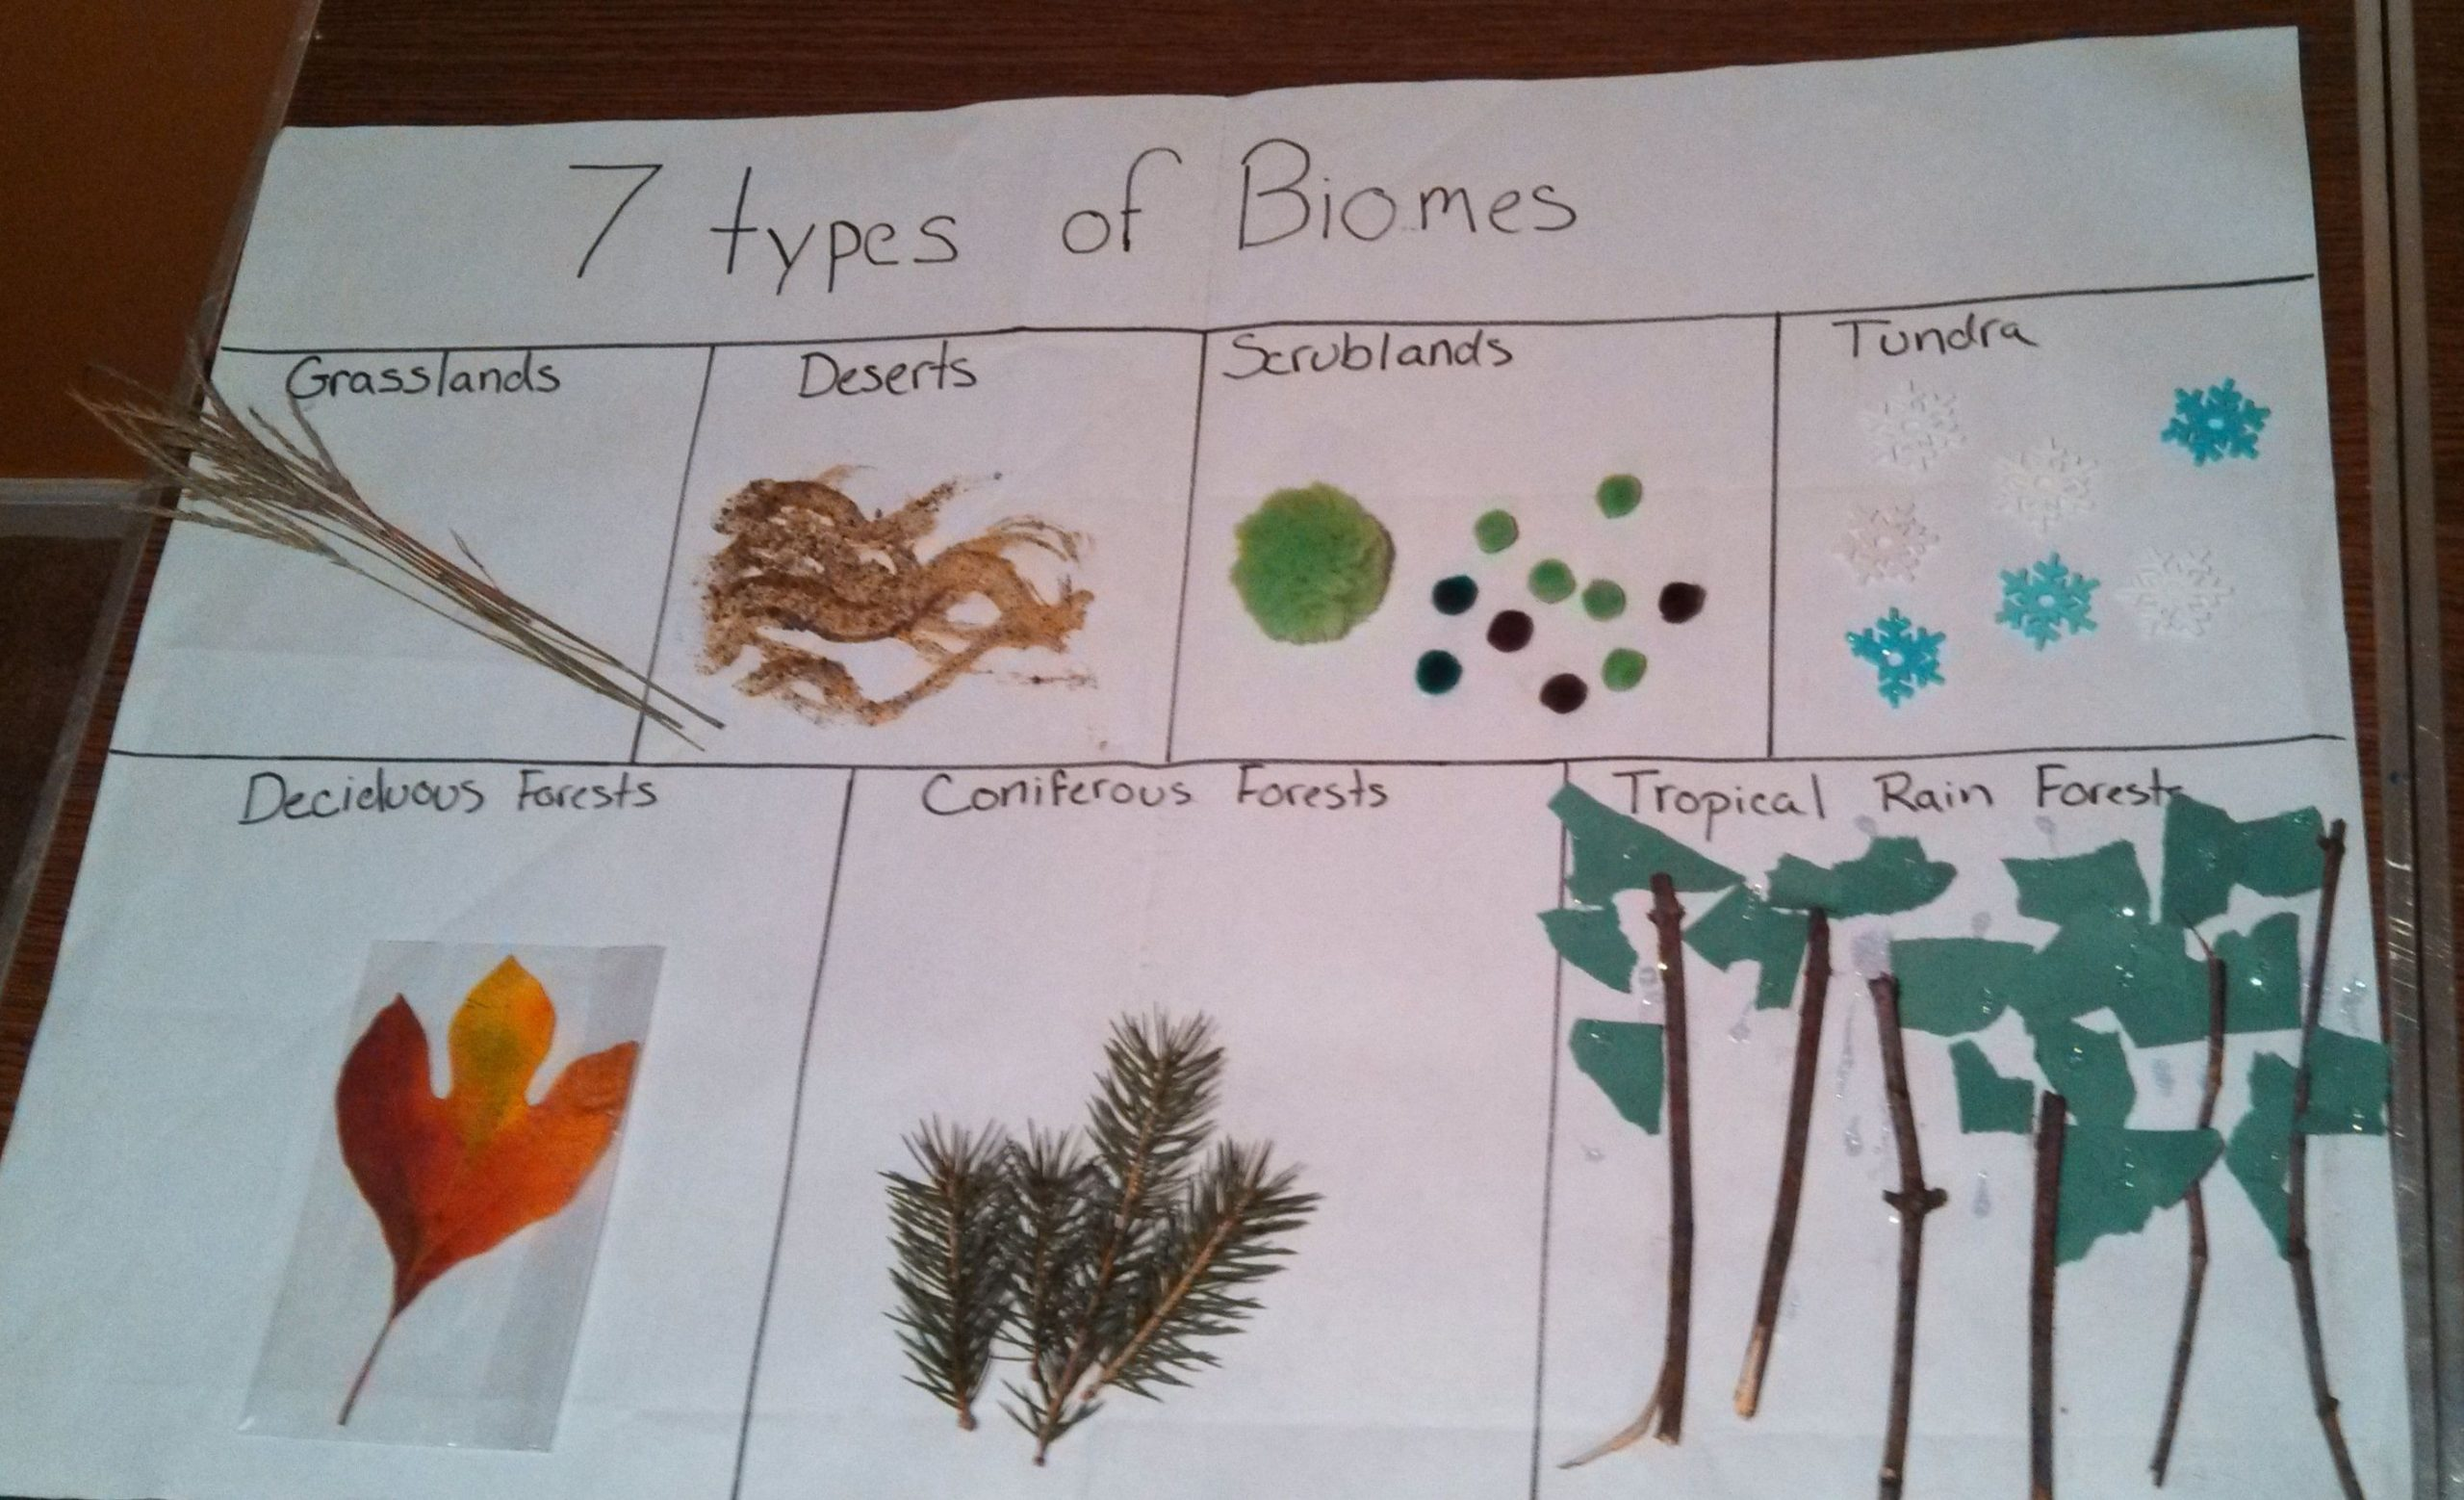 Biomes Worksheet 5th Grade 7 Types Of Biomes Project We Used Anything We Could Find